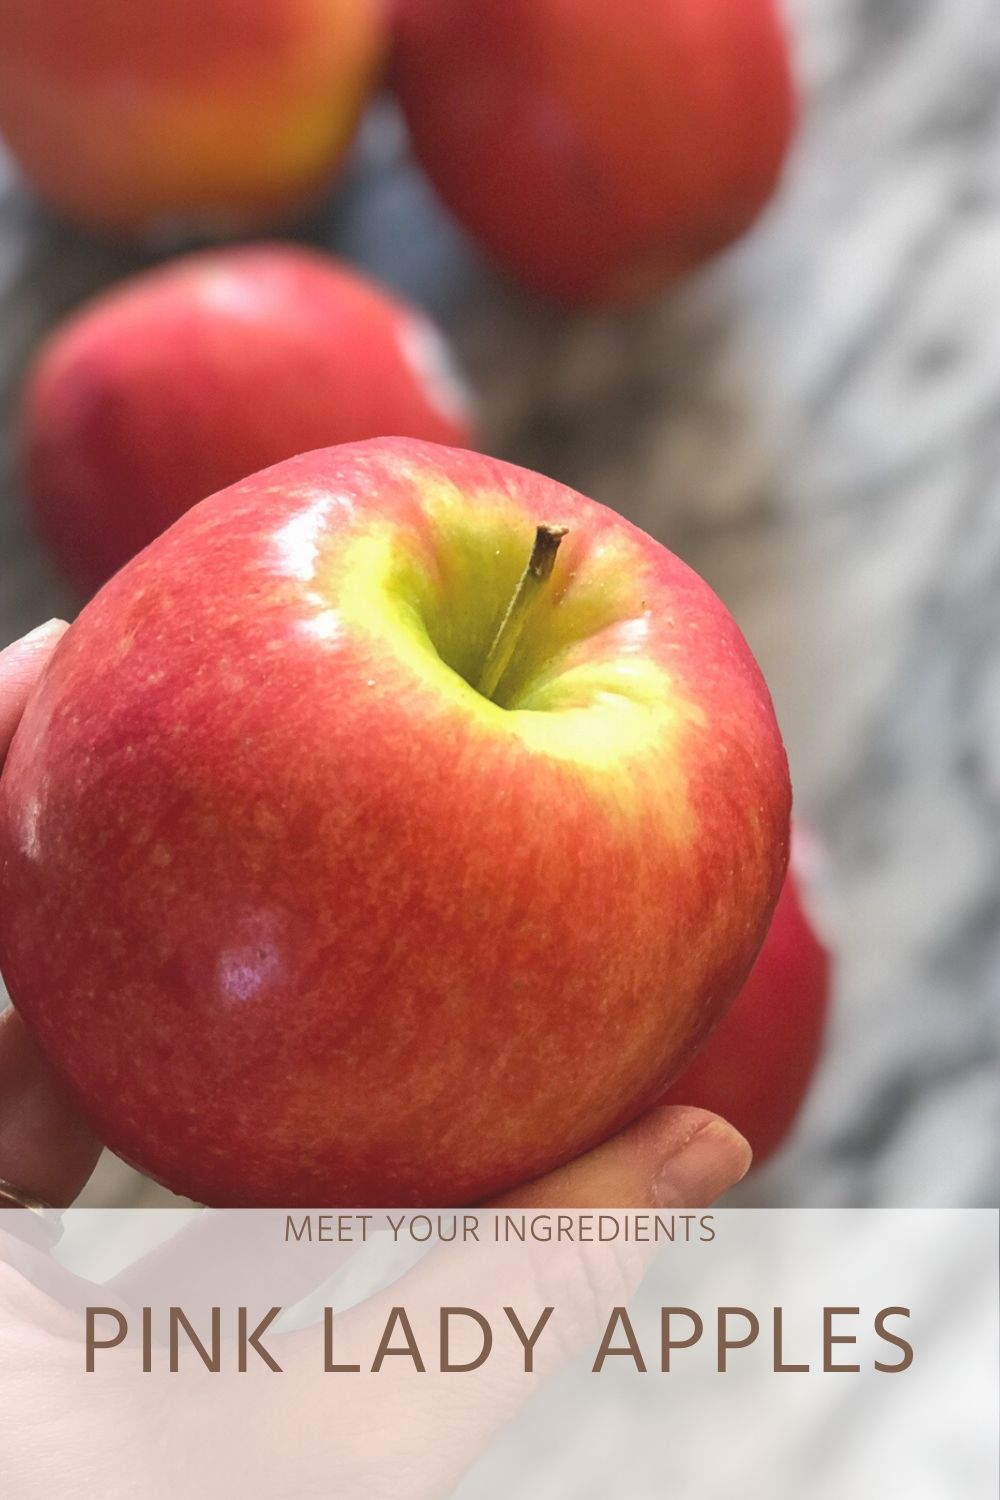 Dietitian Guide to Pink Lady Apples